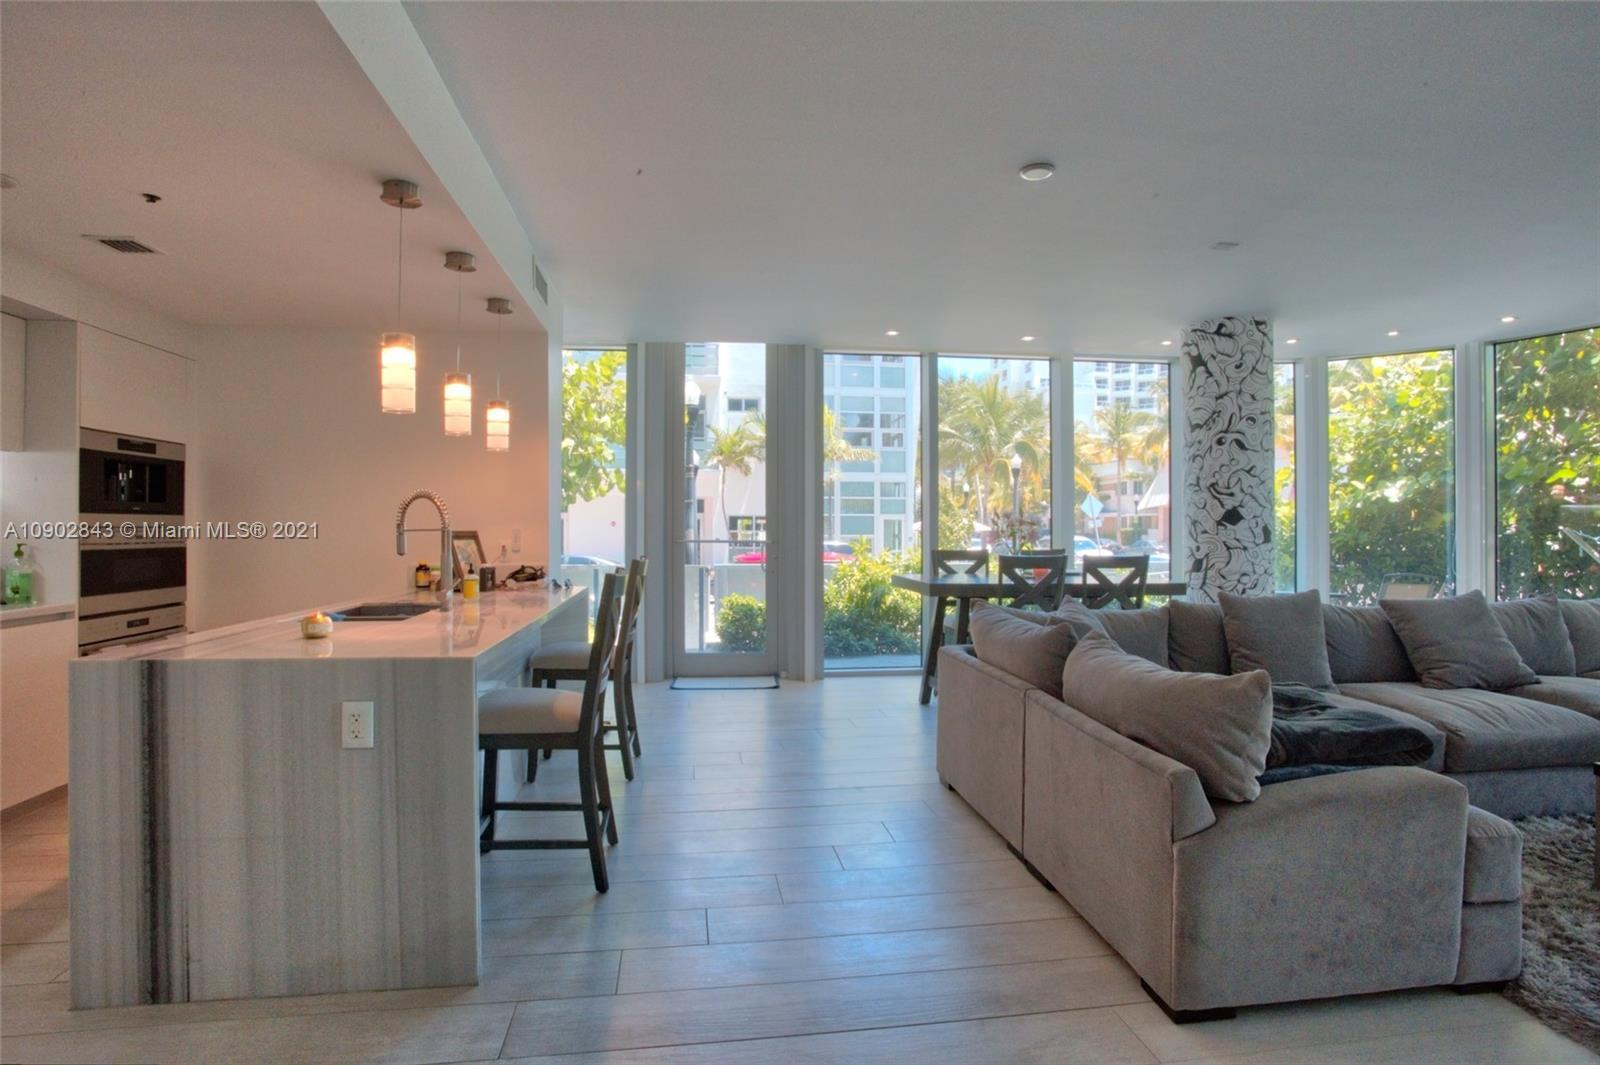 UNIQUE and EXCLUSIVE LANAI, 12 FOOT CEILINGS. A must-see impeccable corner unit. Feels like a reside